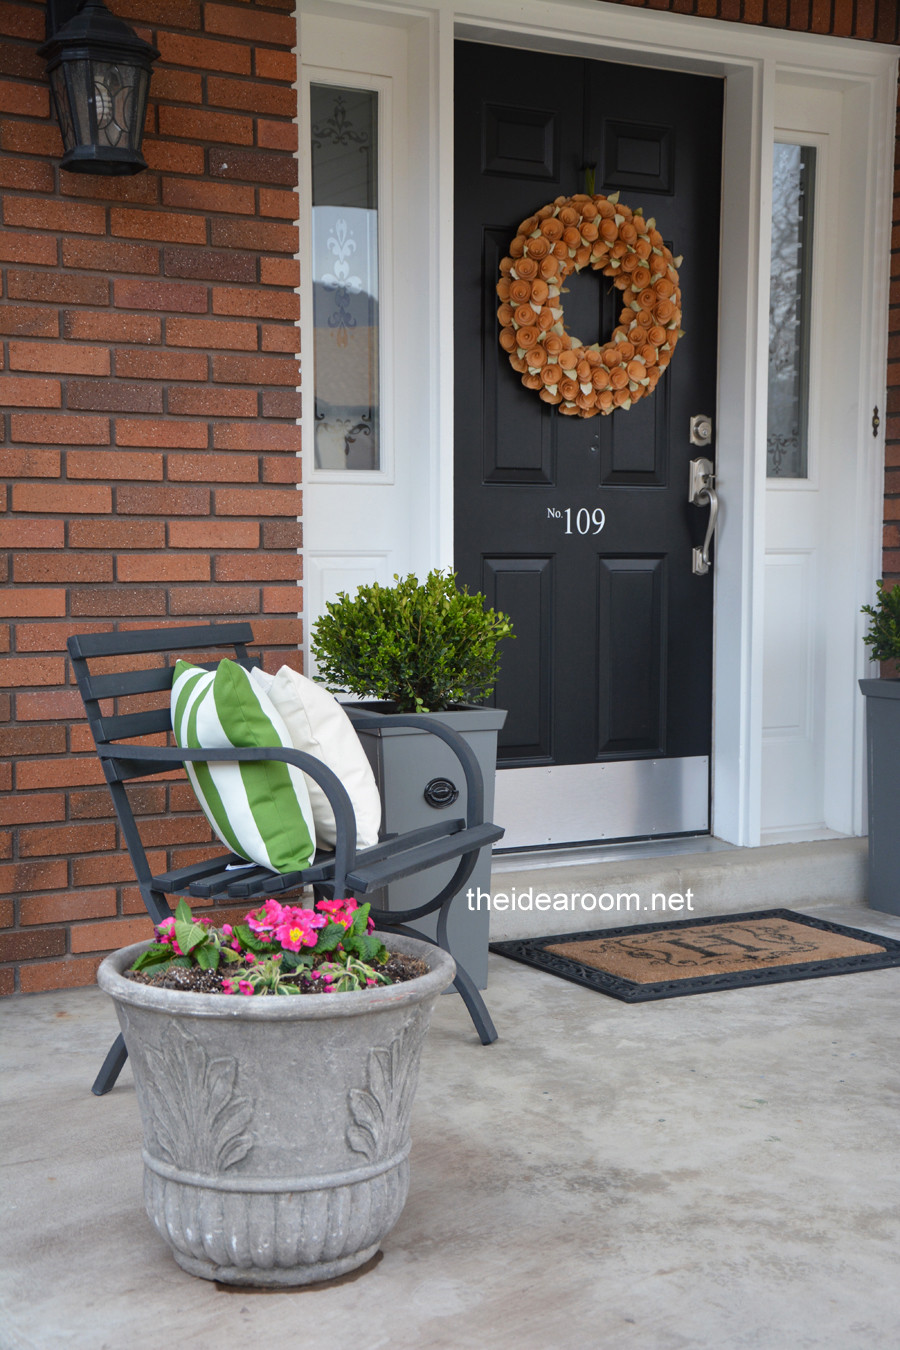 Best ideas about DIY Front Porch . Save or Pin DIY Porch Planter Now.